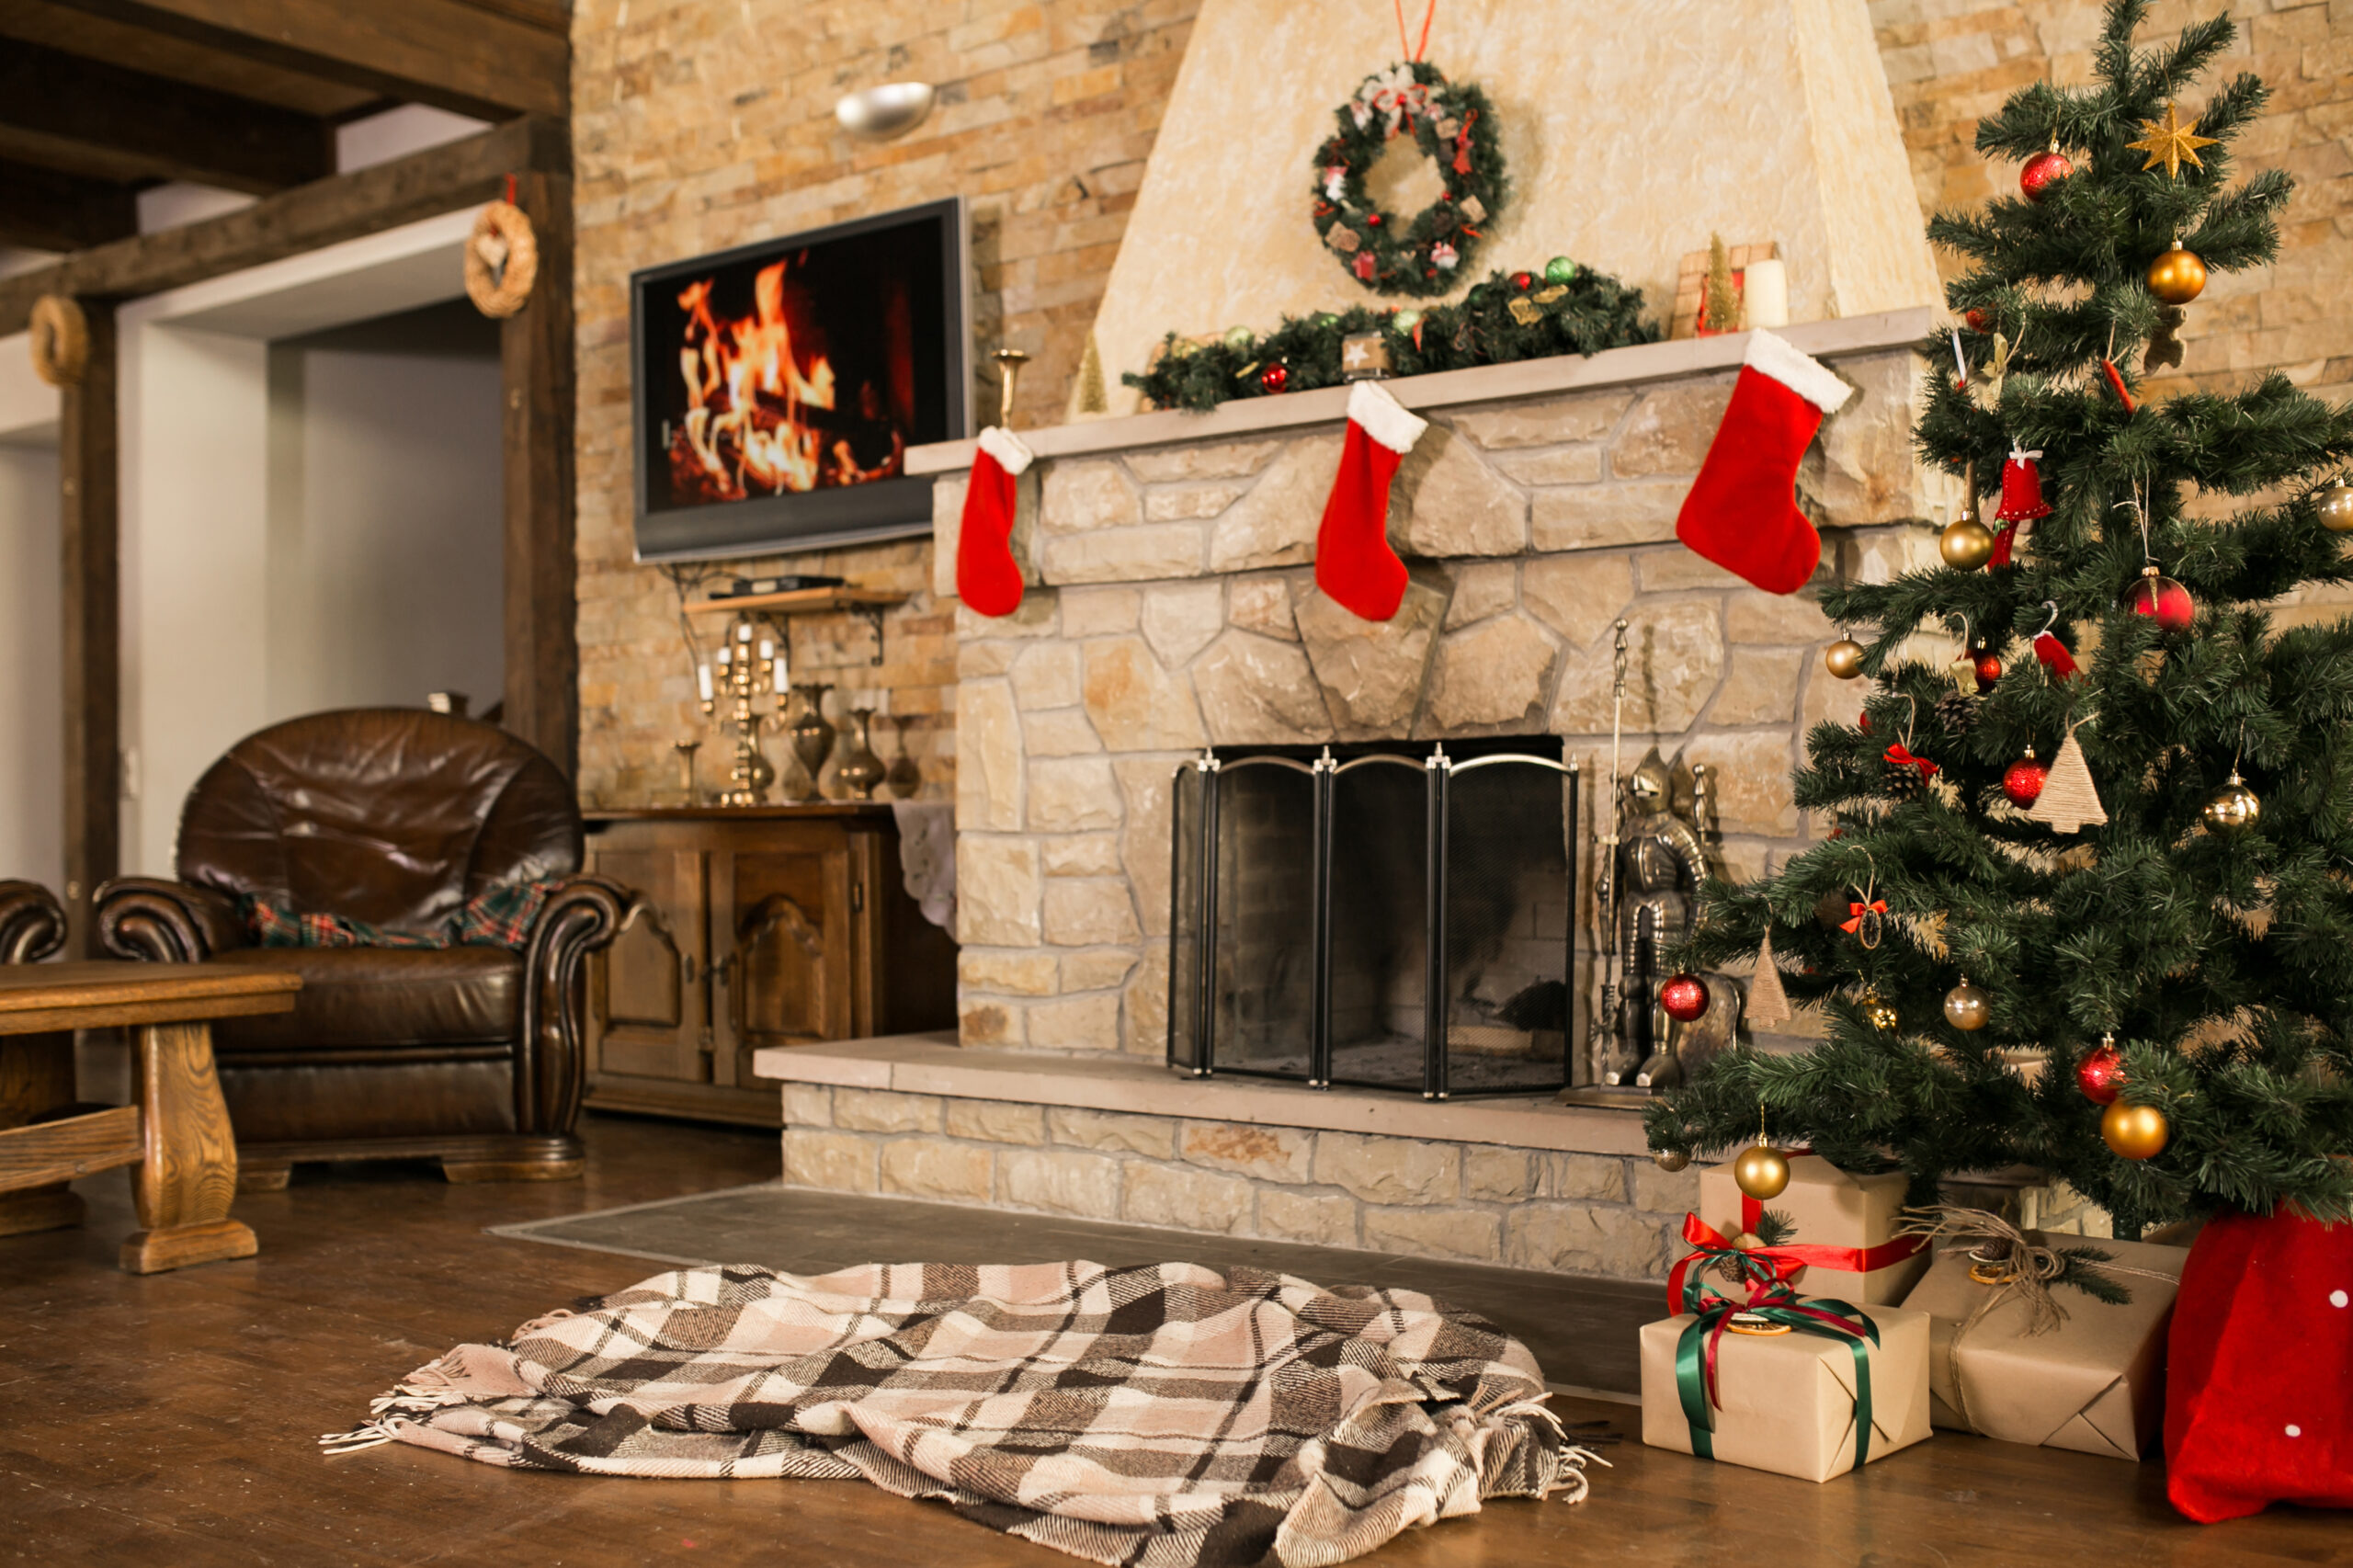 Indoor holiday decor with Christmas tree and fireplace.